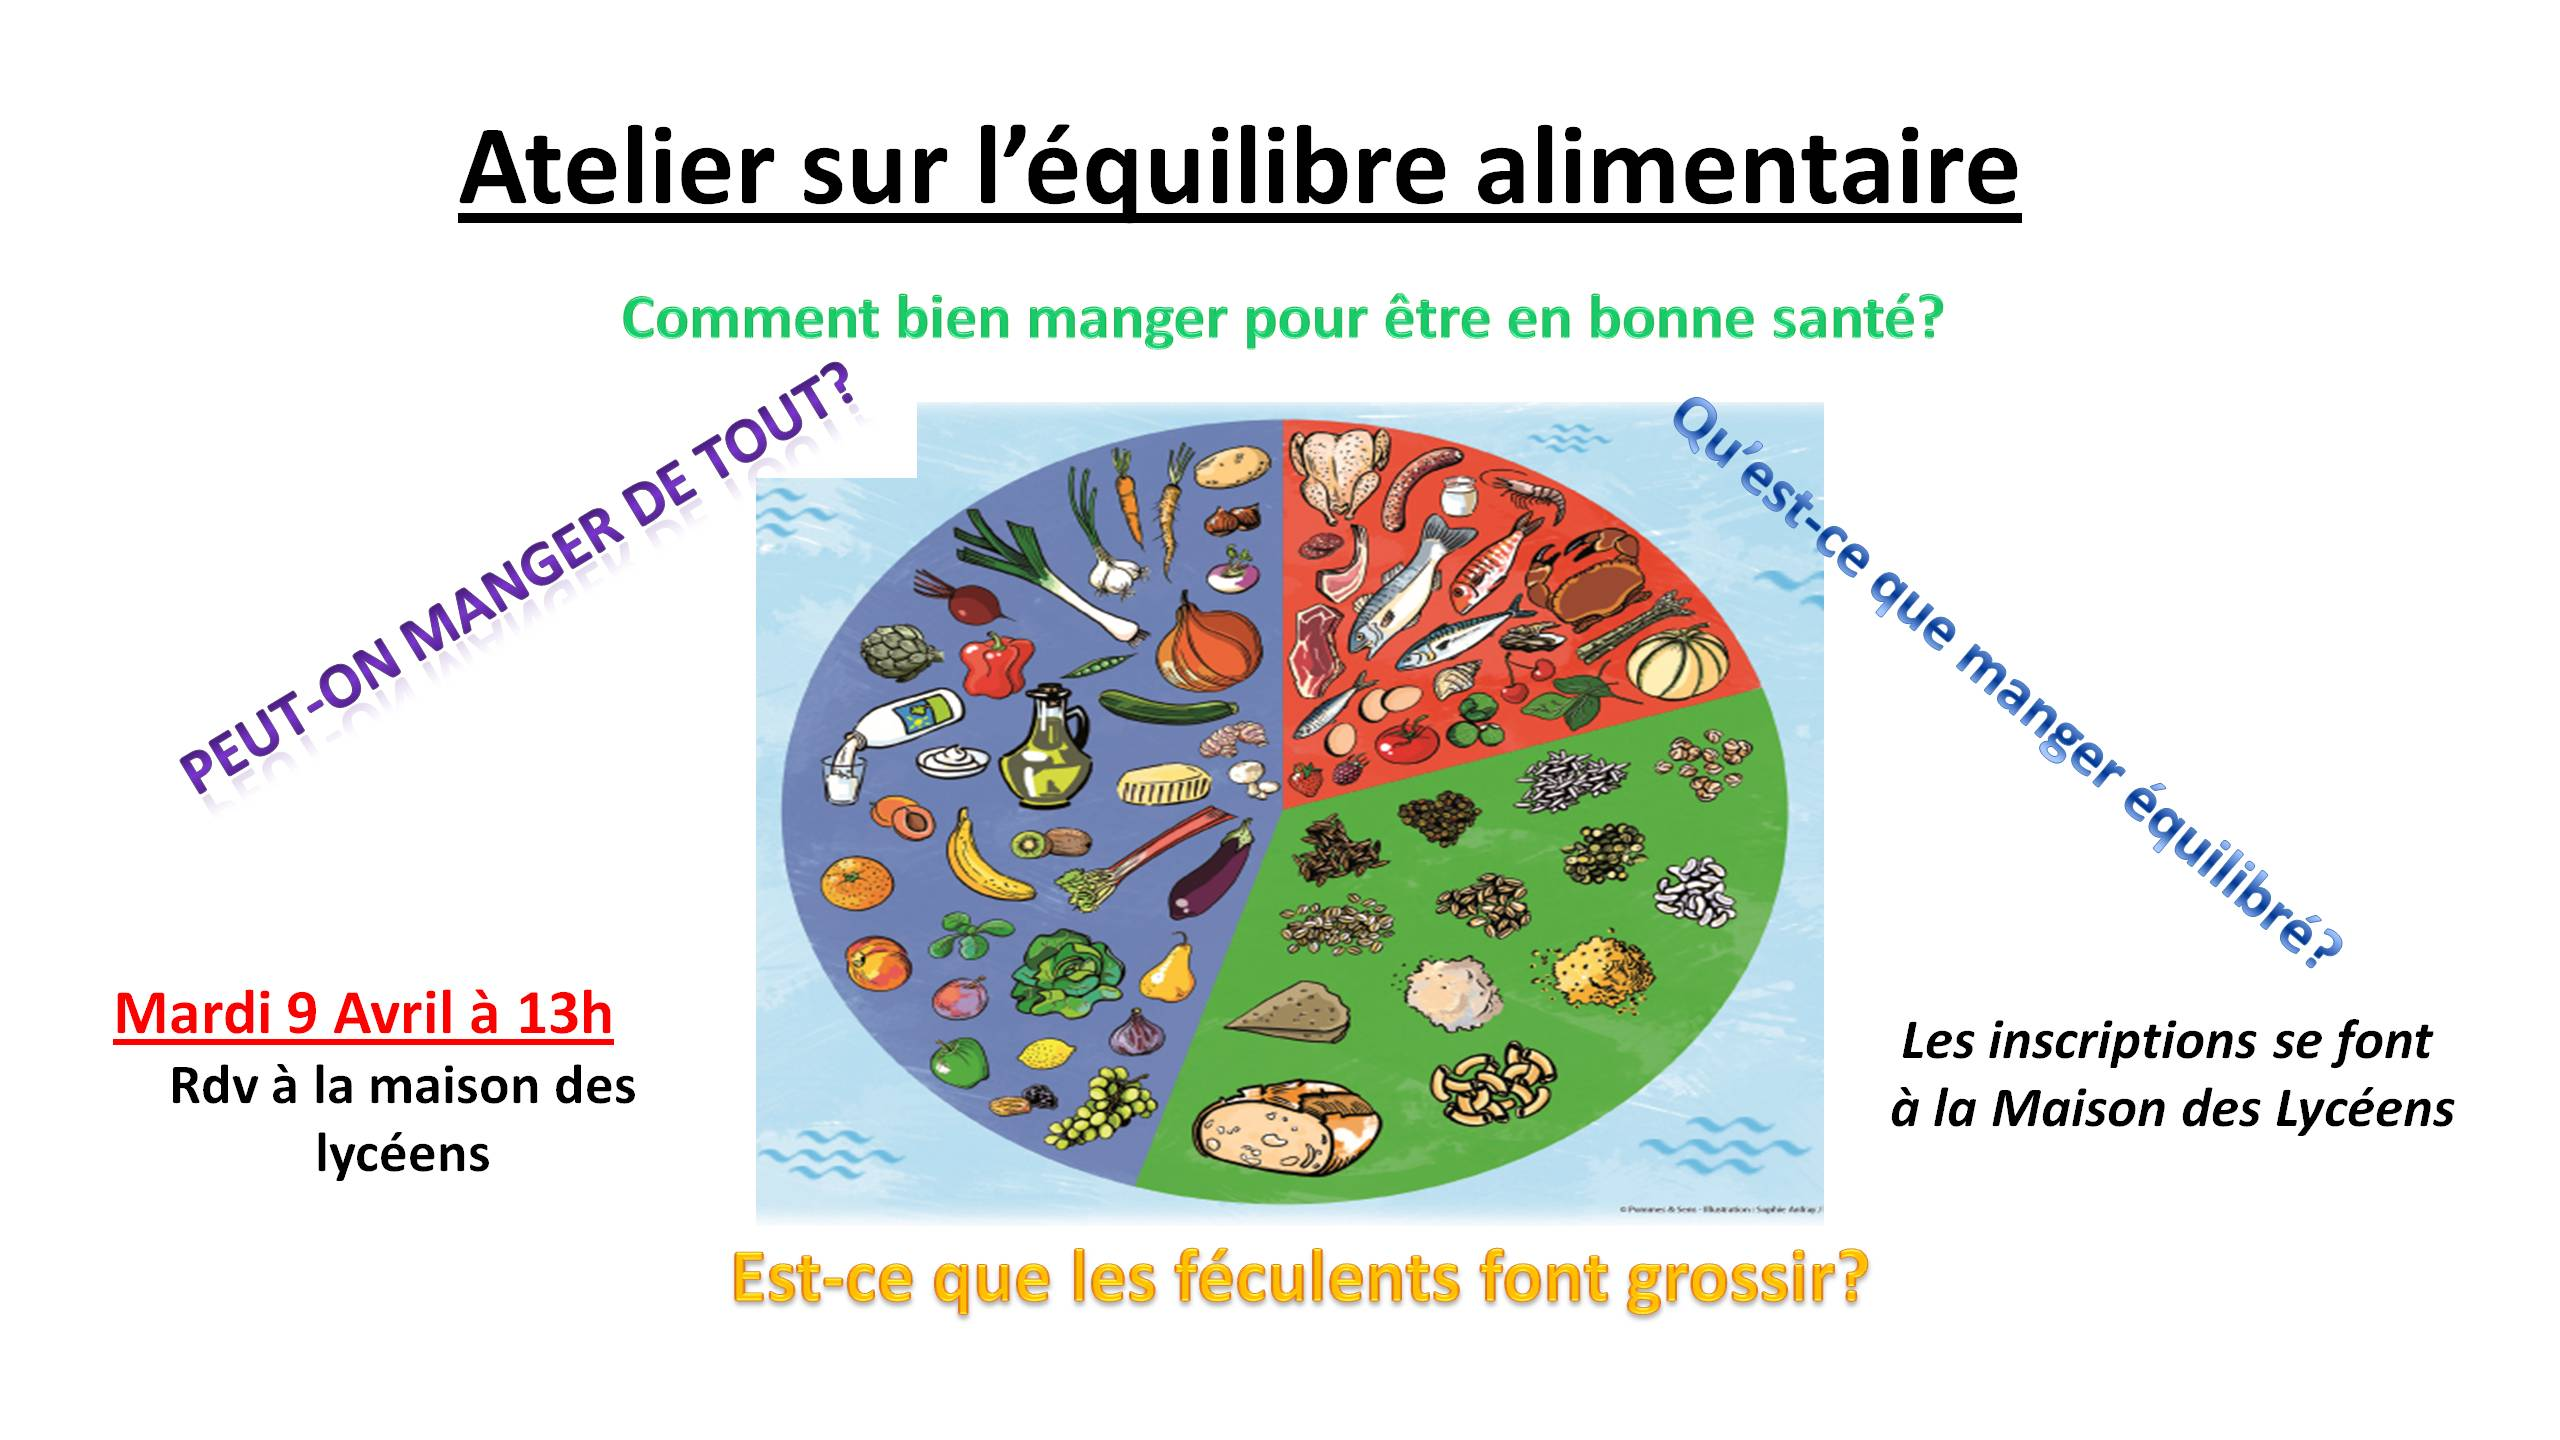 Atelier Equilibre alimentaire